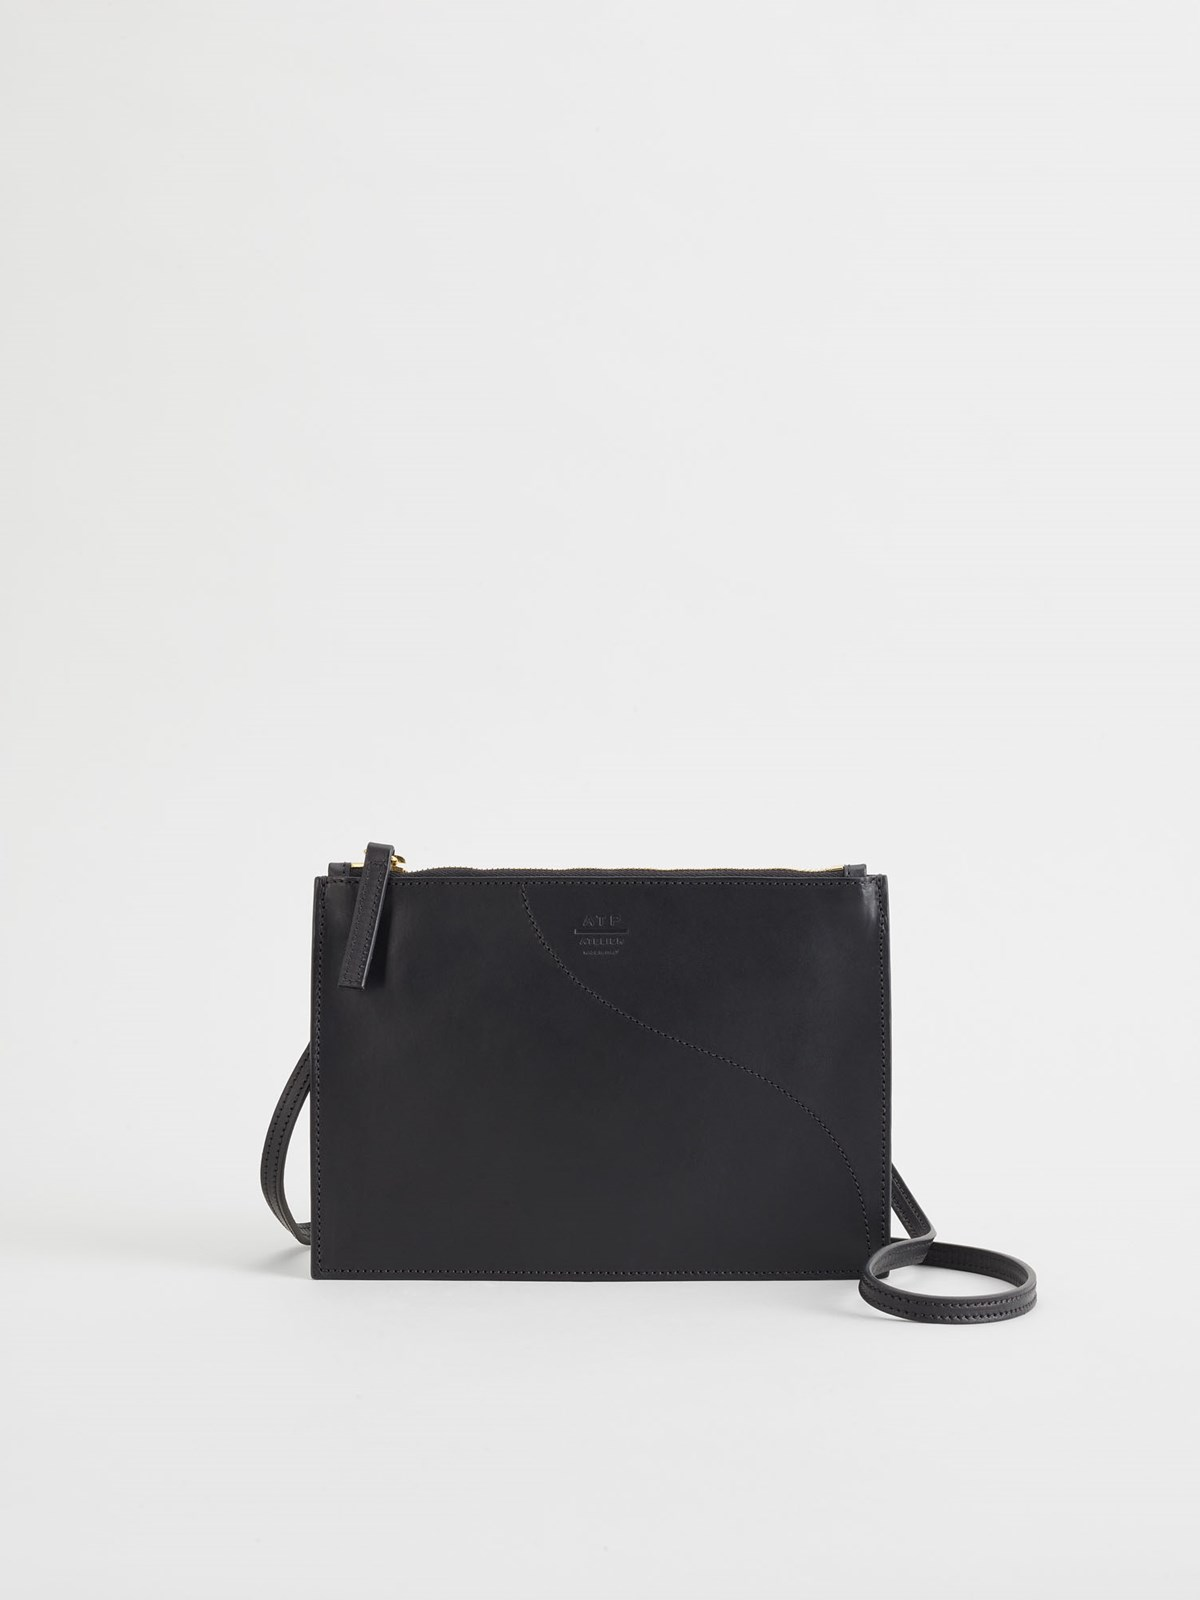 Lucca Black Crossbody bag